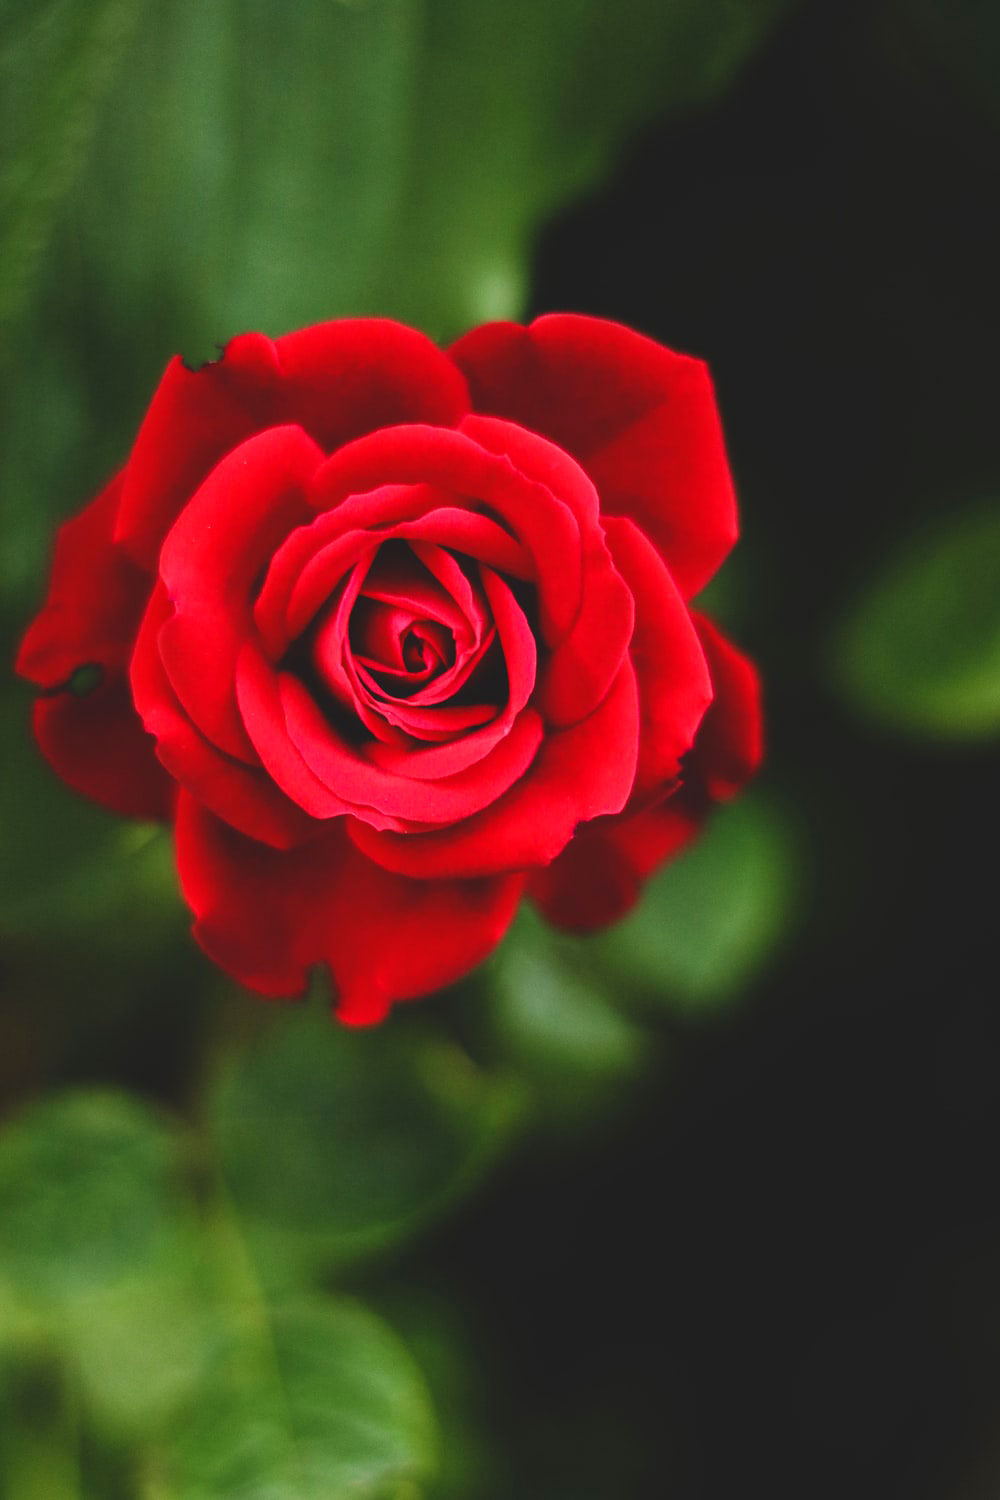 Latest Superb Whatsapp Dp Images for rose